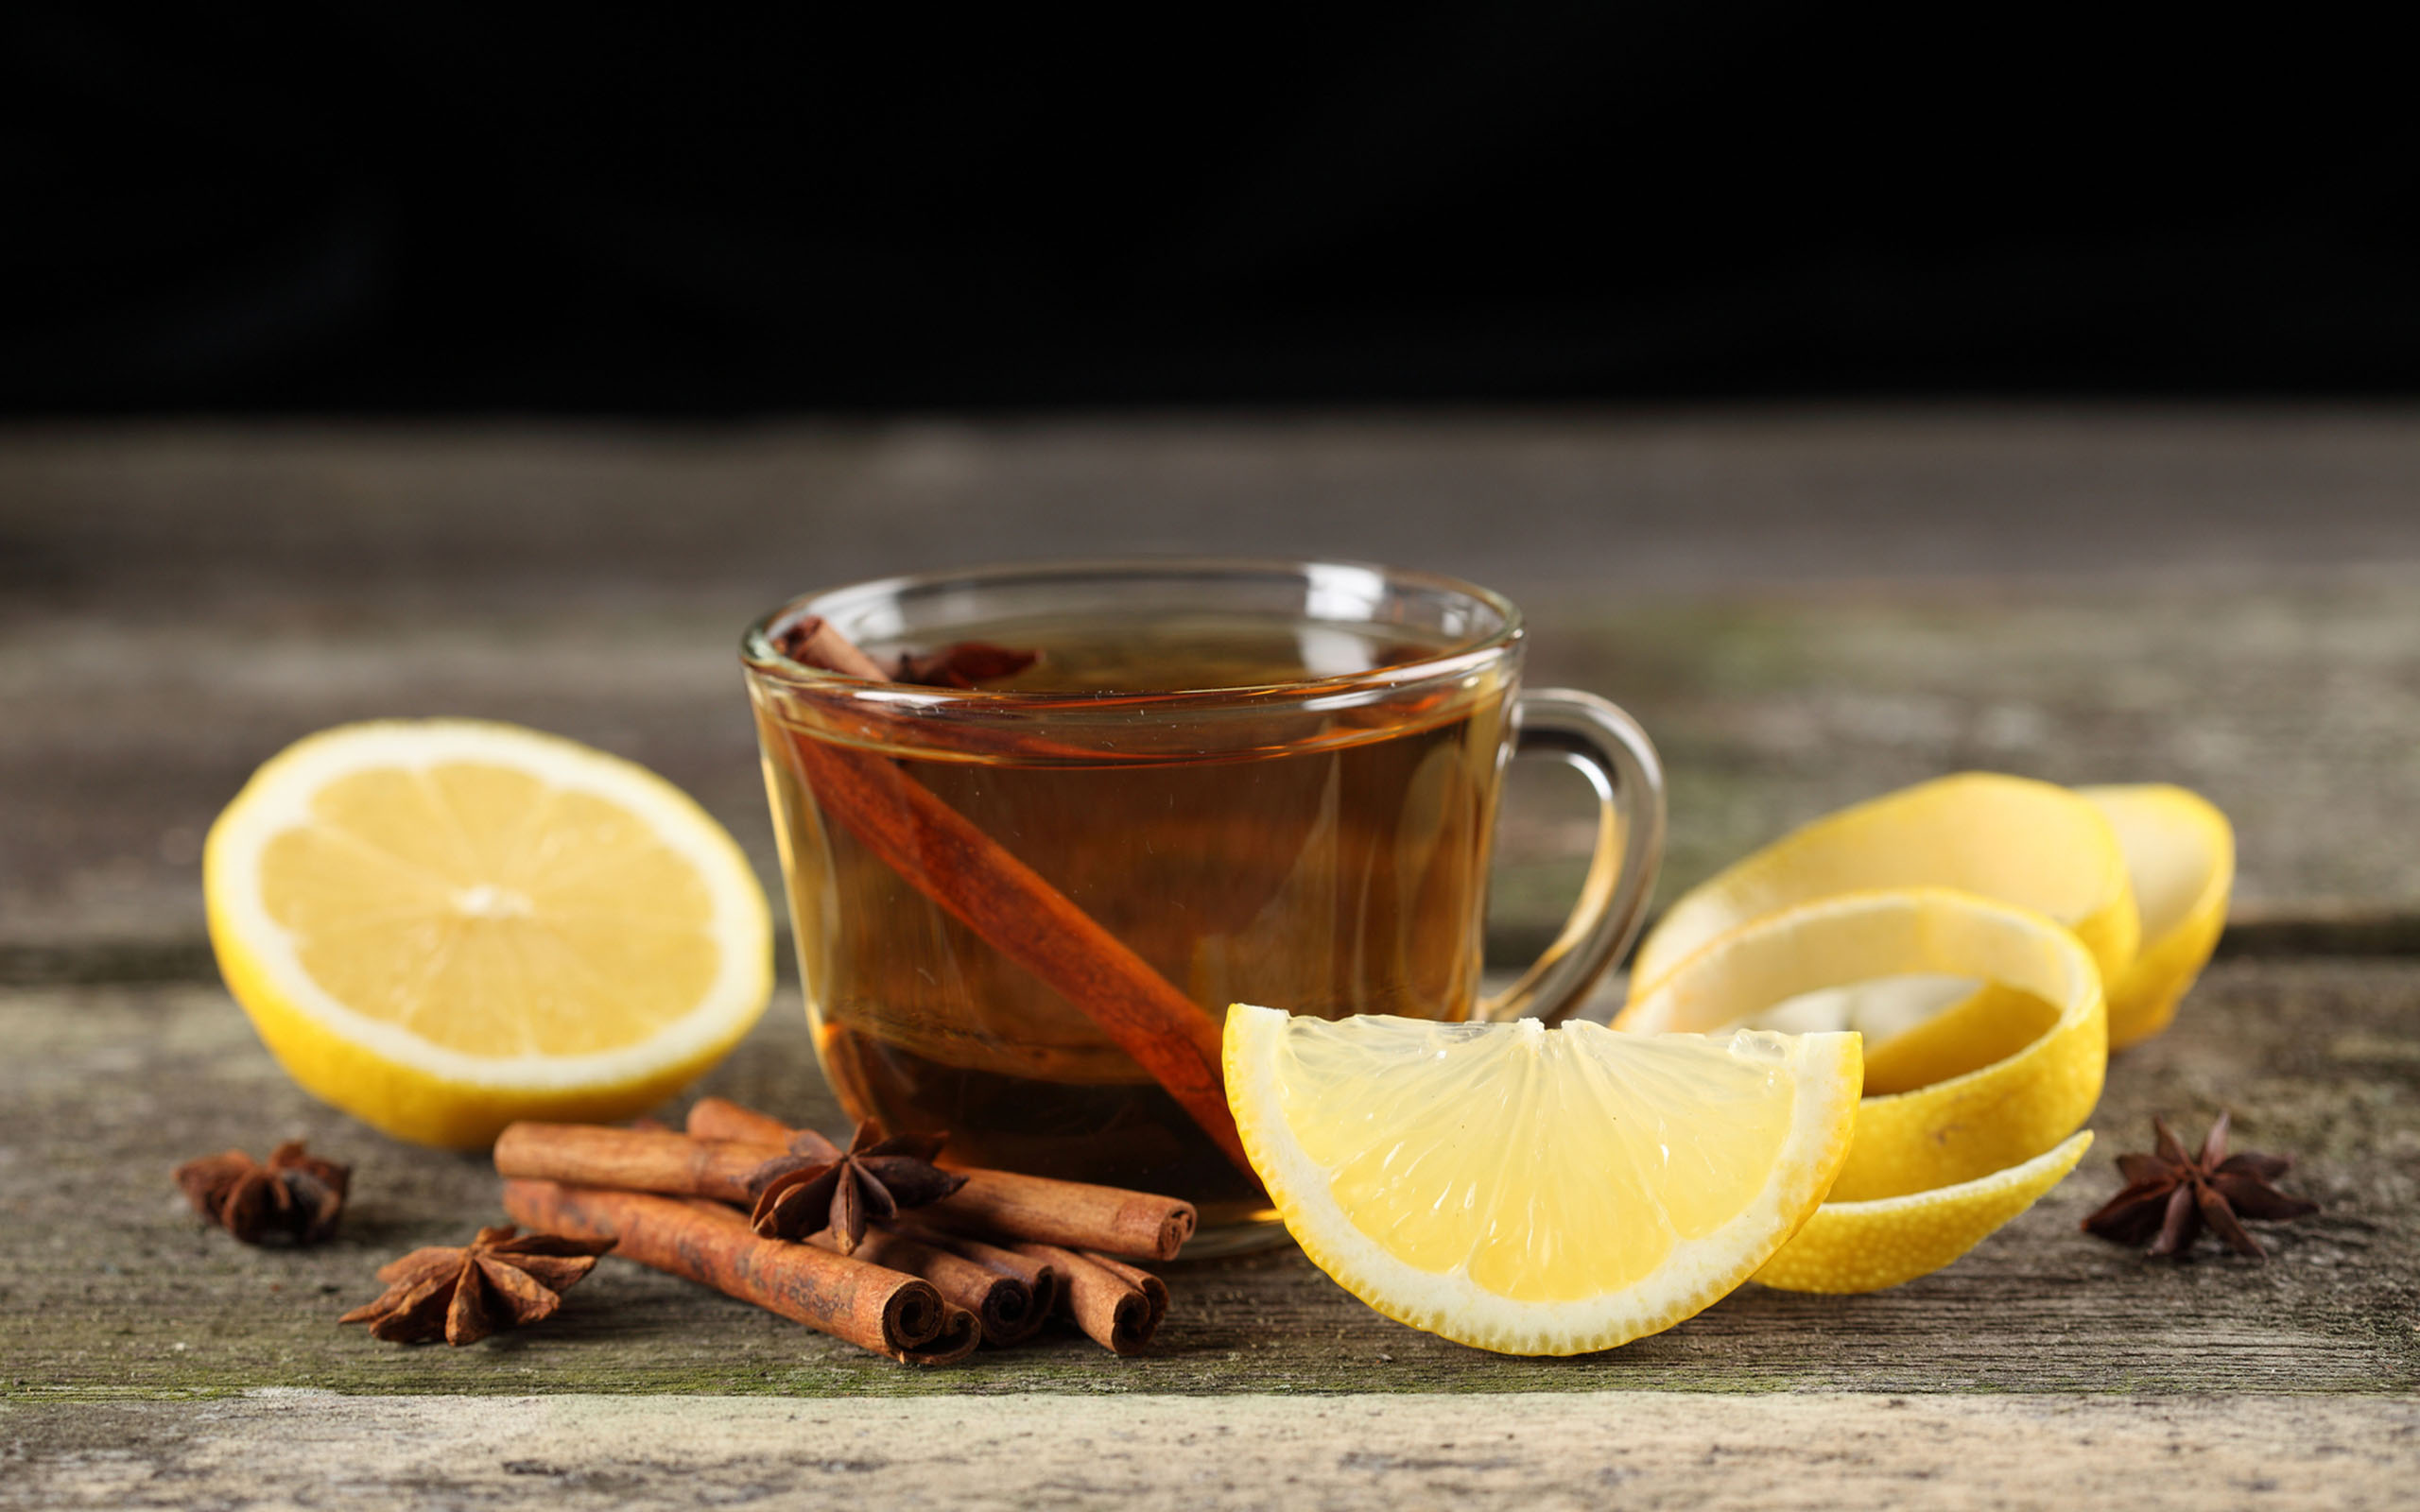 Hot Tea With Lemon And Cinnamon Winter Drink